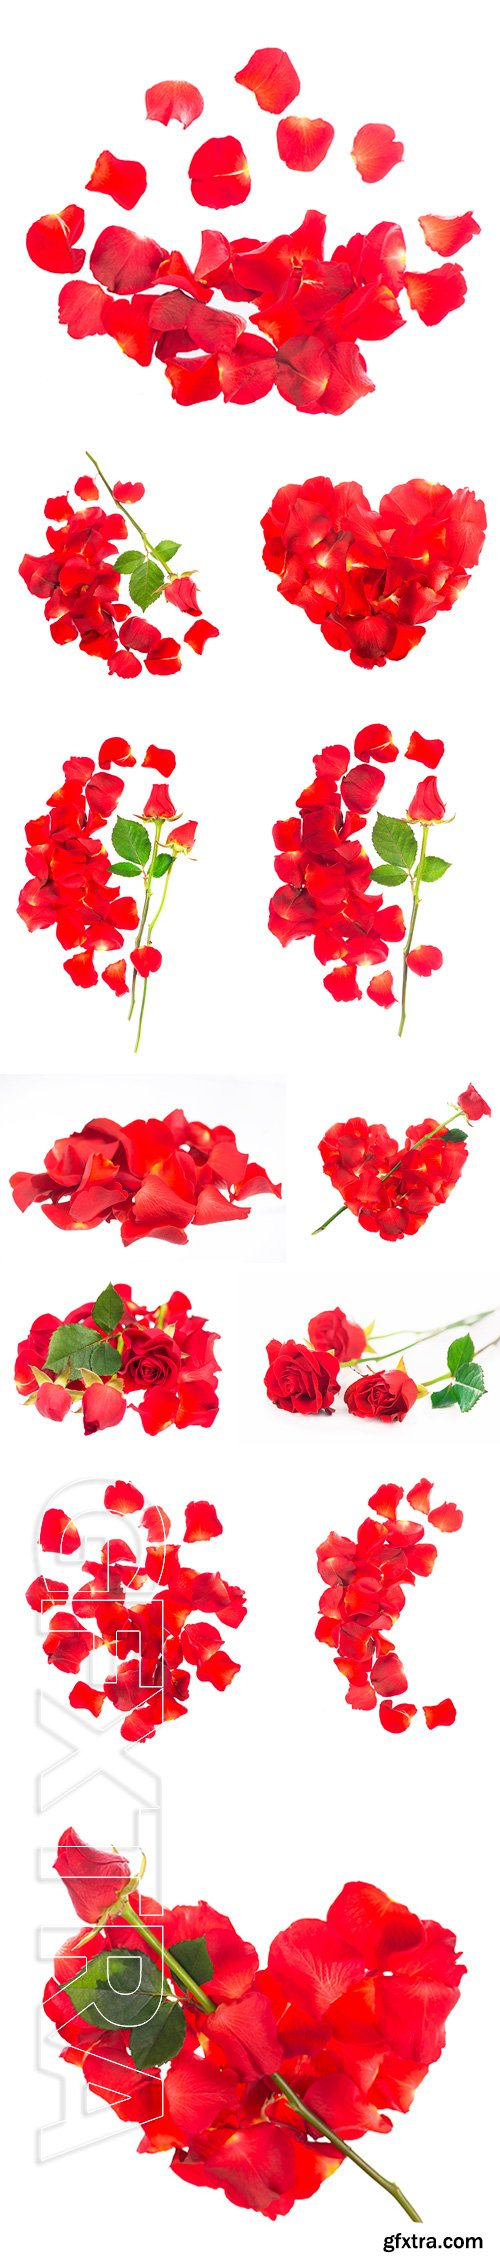 Stock Photos - Red rose petals isolated over the white background